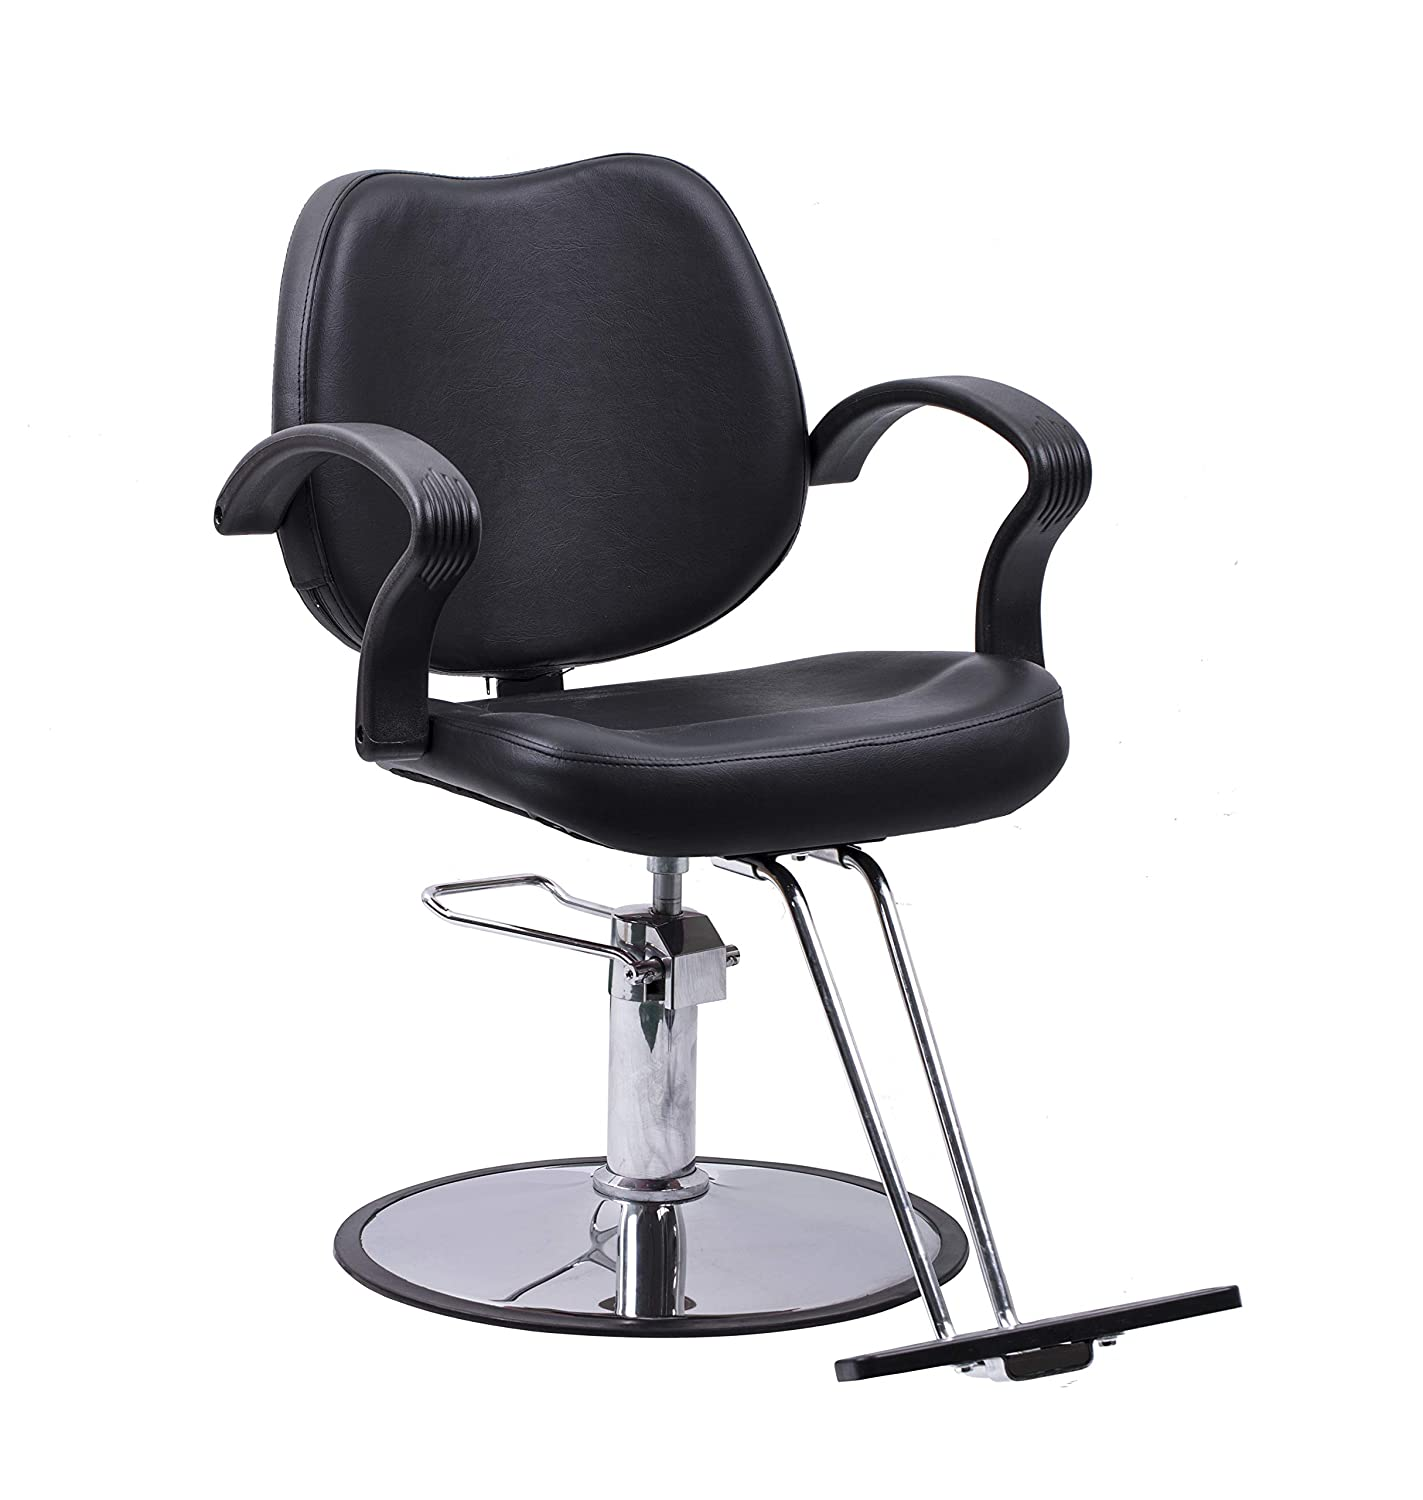 Beauty Style Classic Hydraulic Barber Chair Styling Chair Salon Beauty Spa Equipment